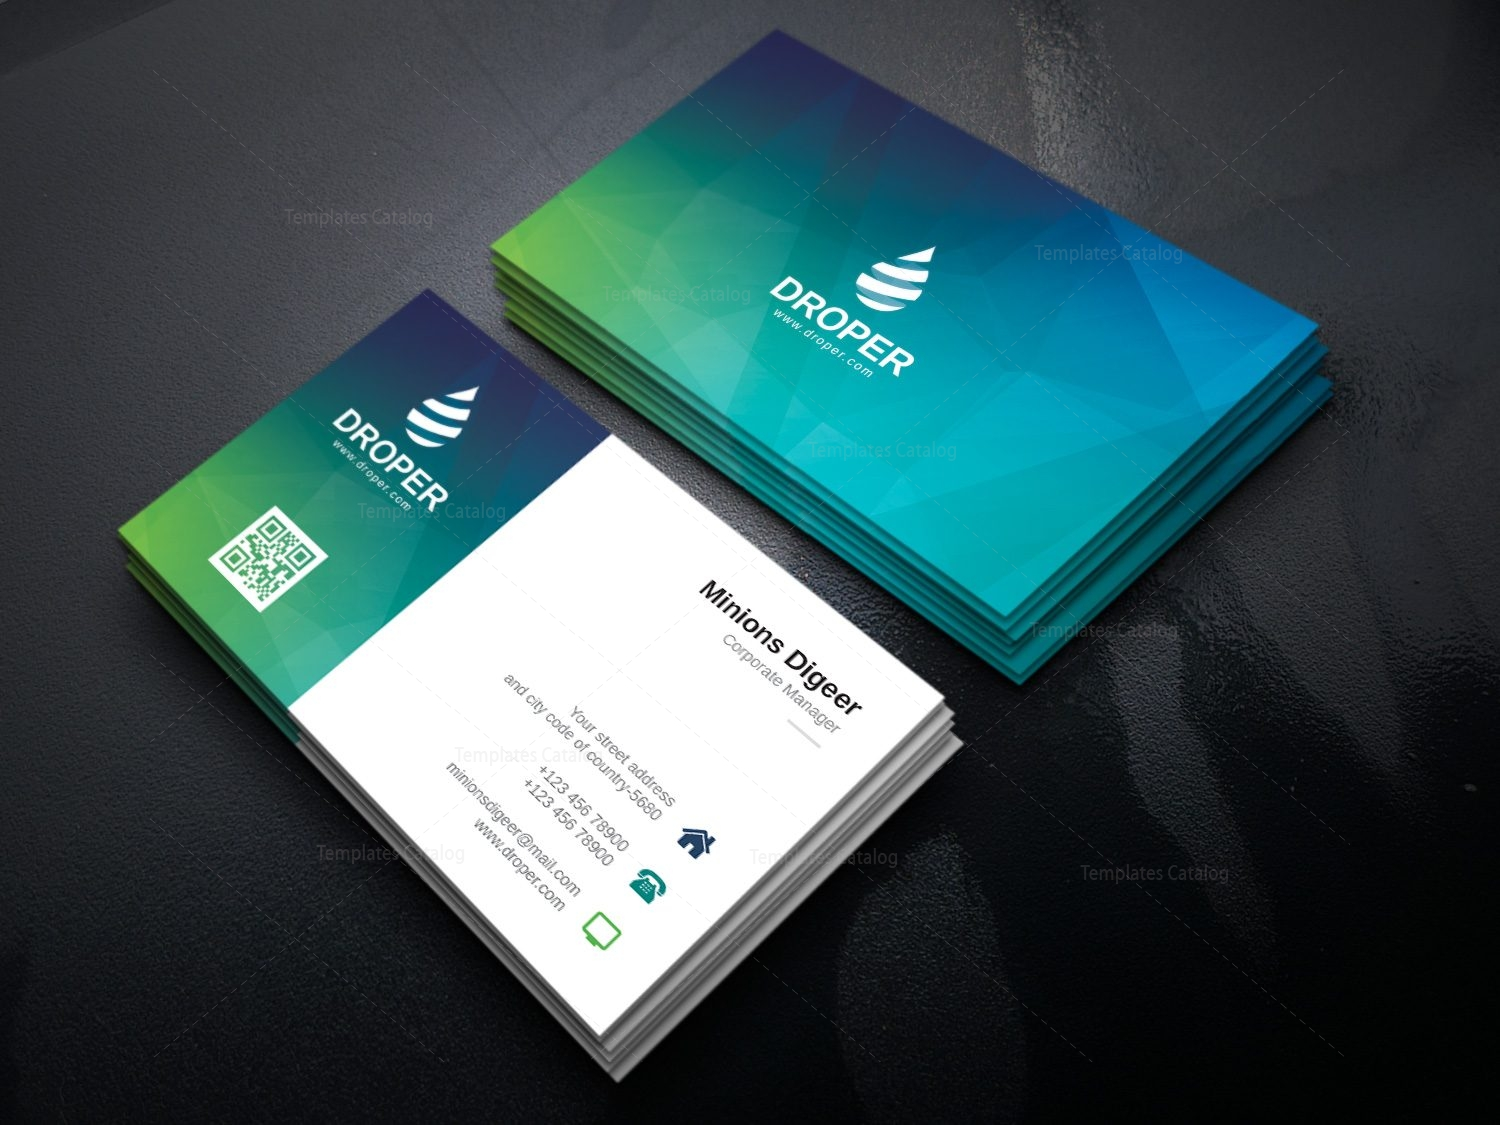 Dolphin modern corporate business card template 000924 template dolphin modern corporate business card template 3 flashek Image collections